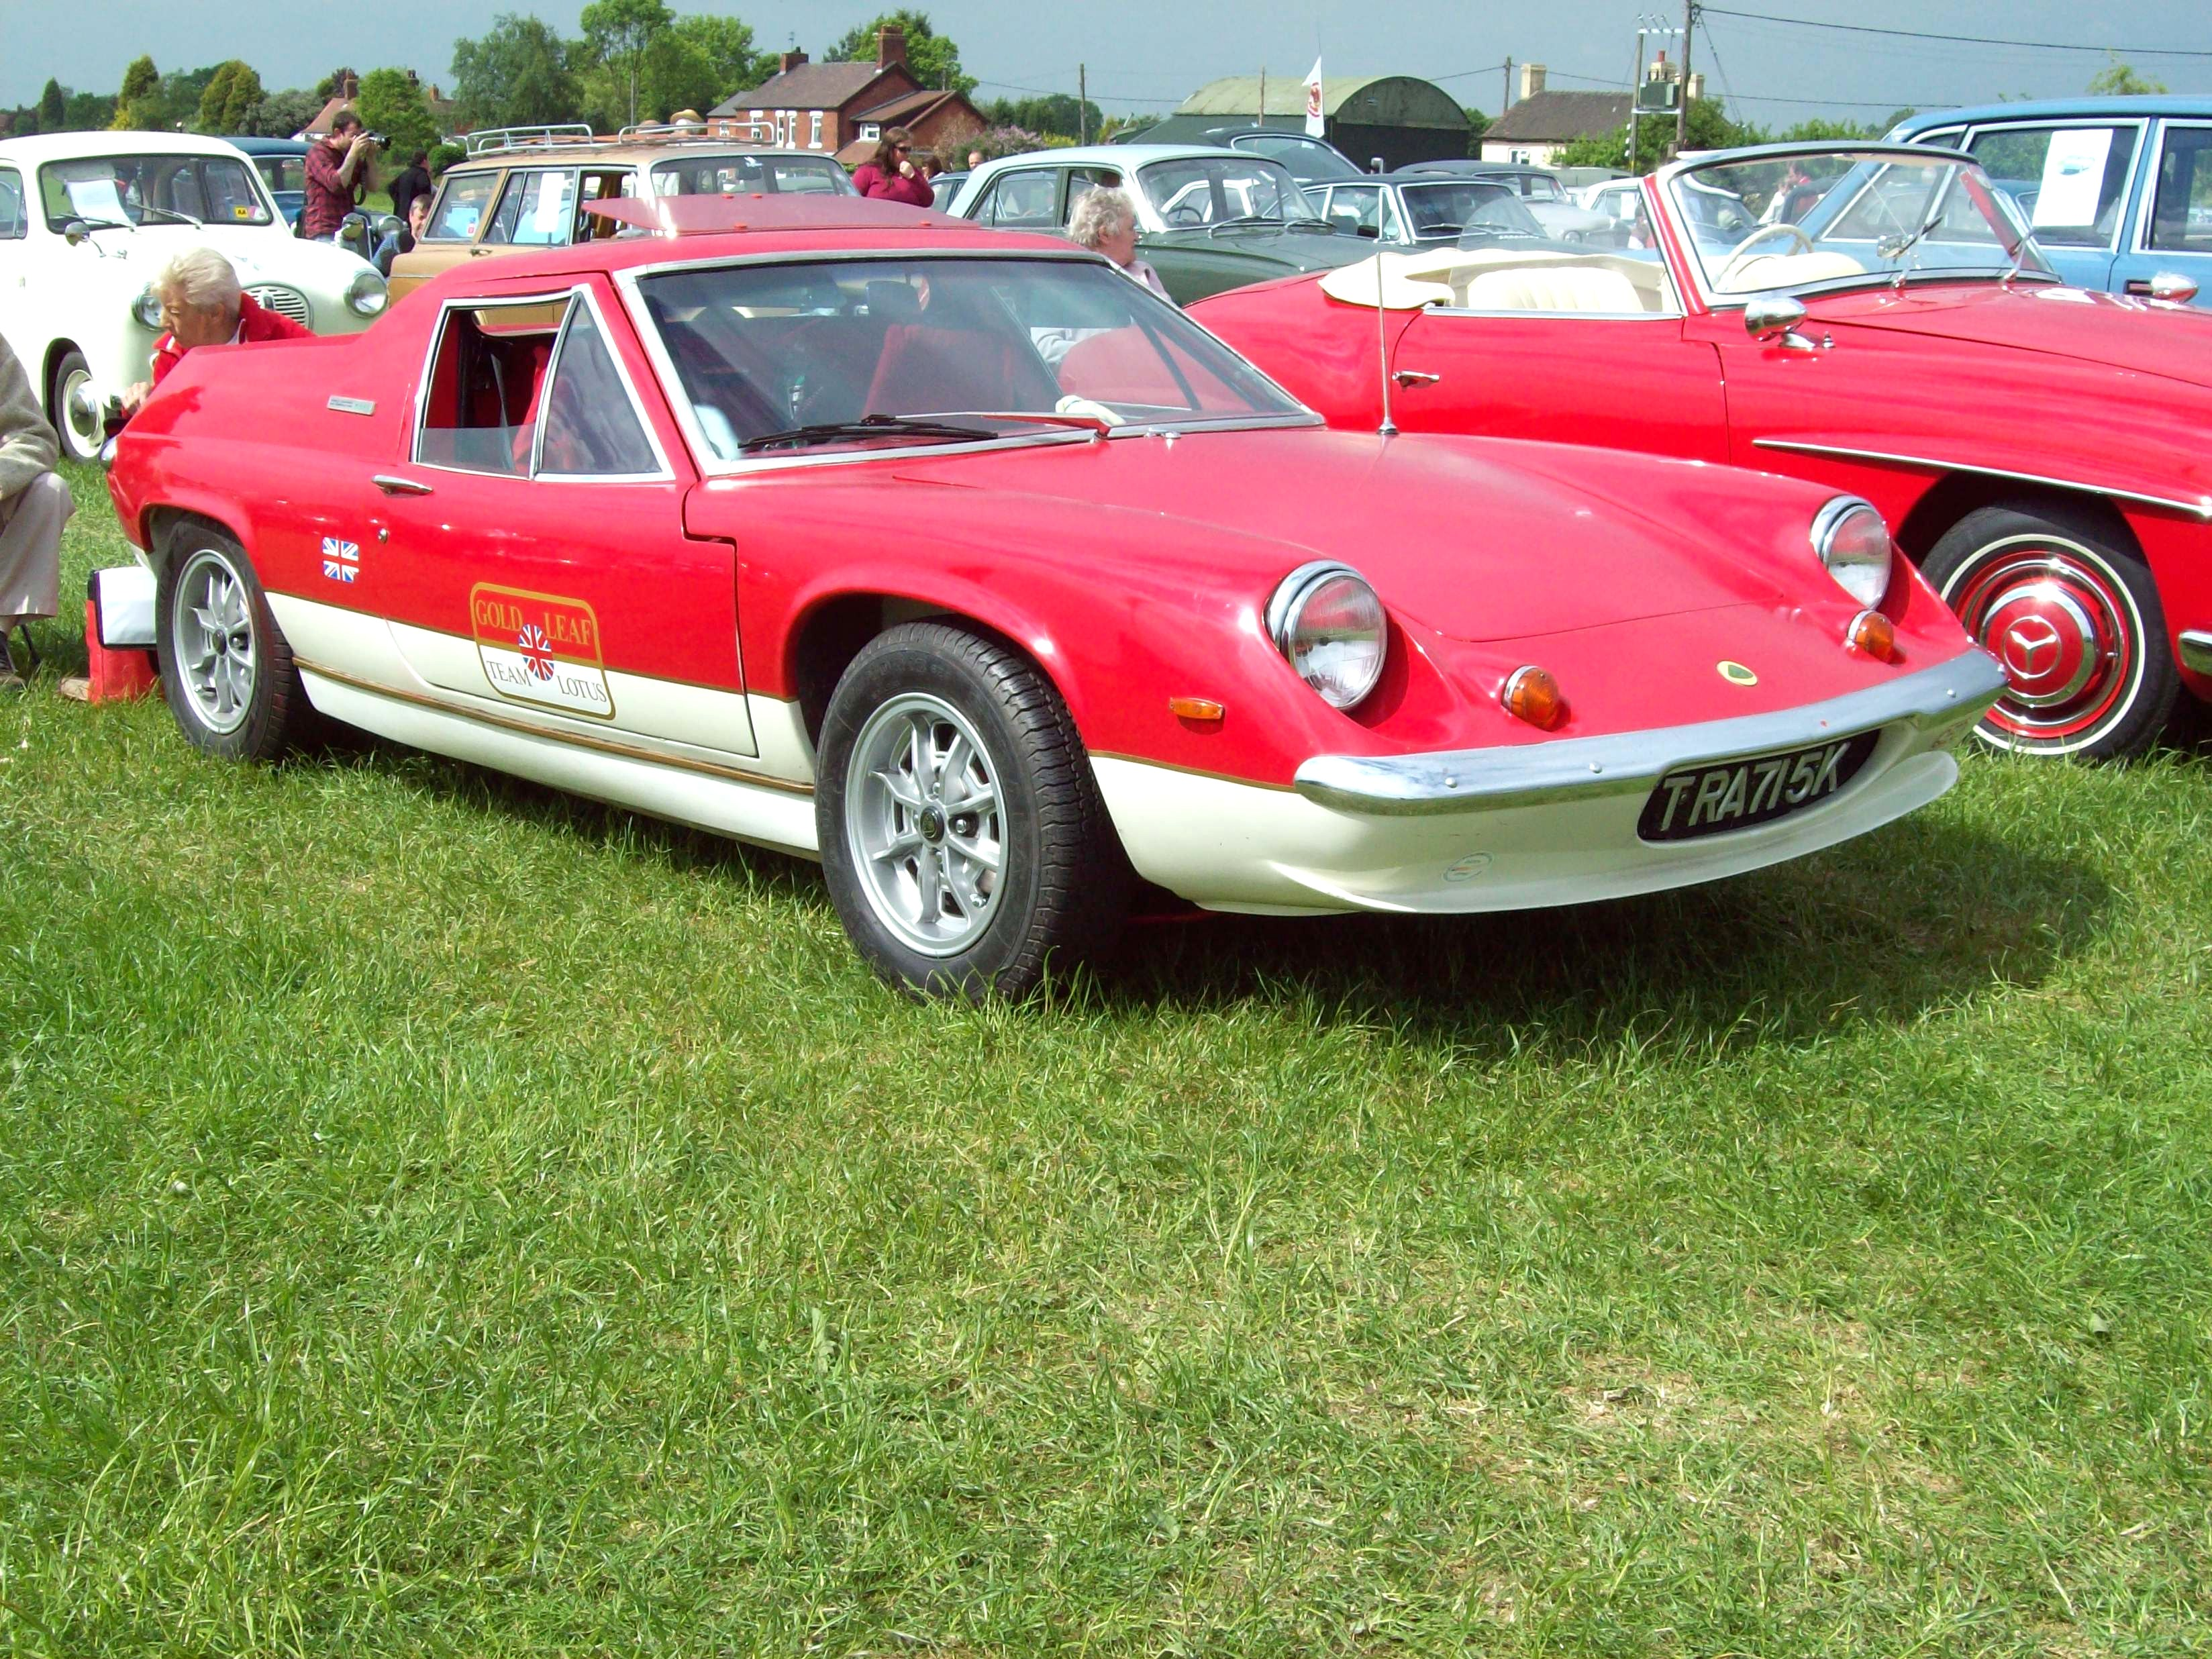 88 Lotus Europa Twin Cam Type 74 (1971-74) | Flickr - Photo Sharing!